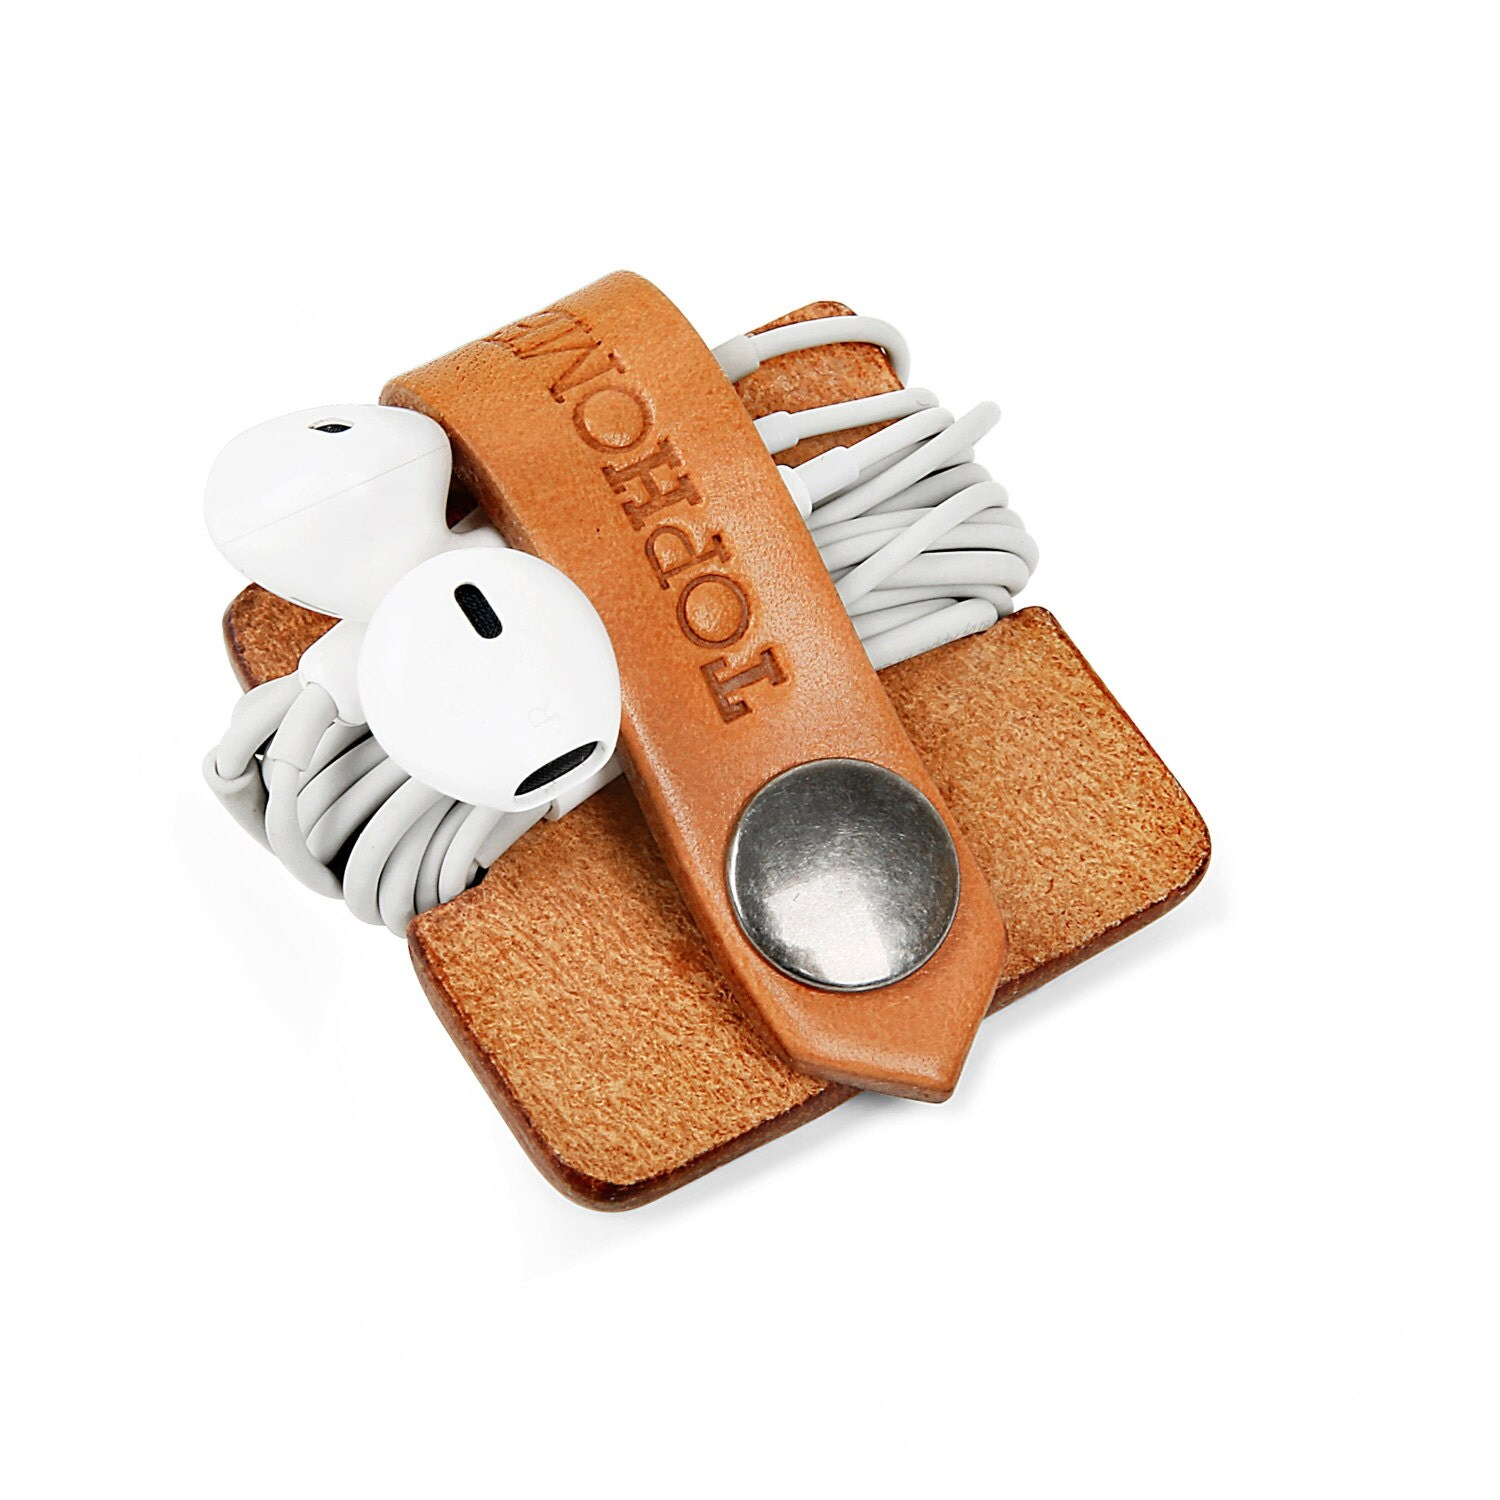 Earphone Organizer Cord Organizer Leather Cable Holder Earbud